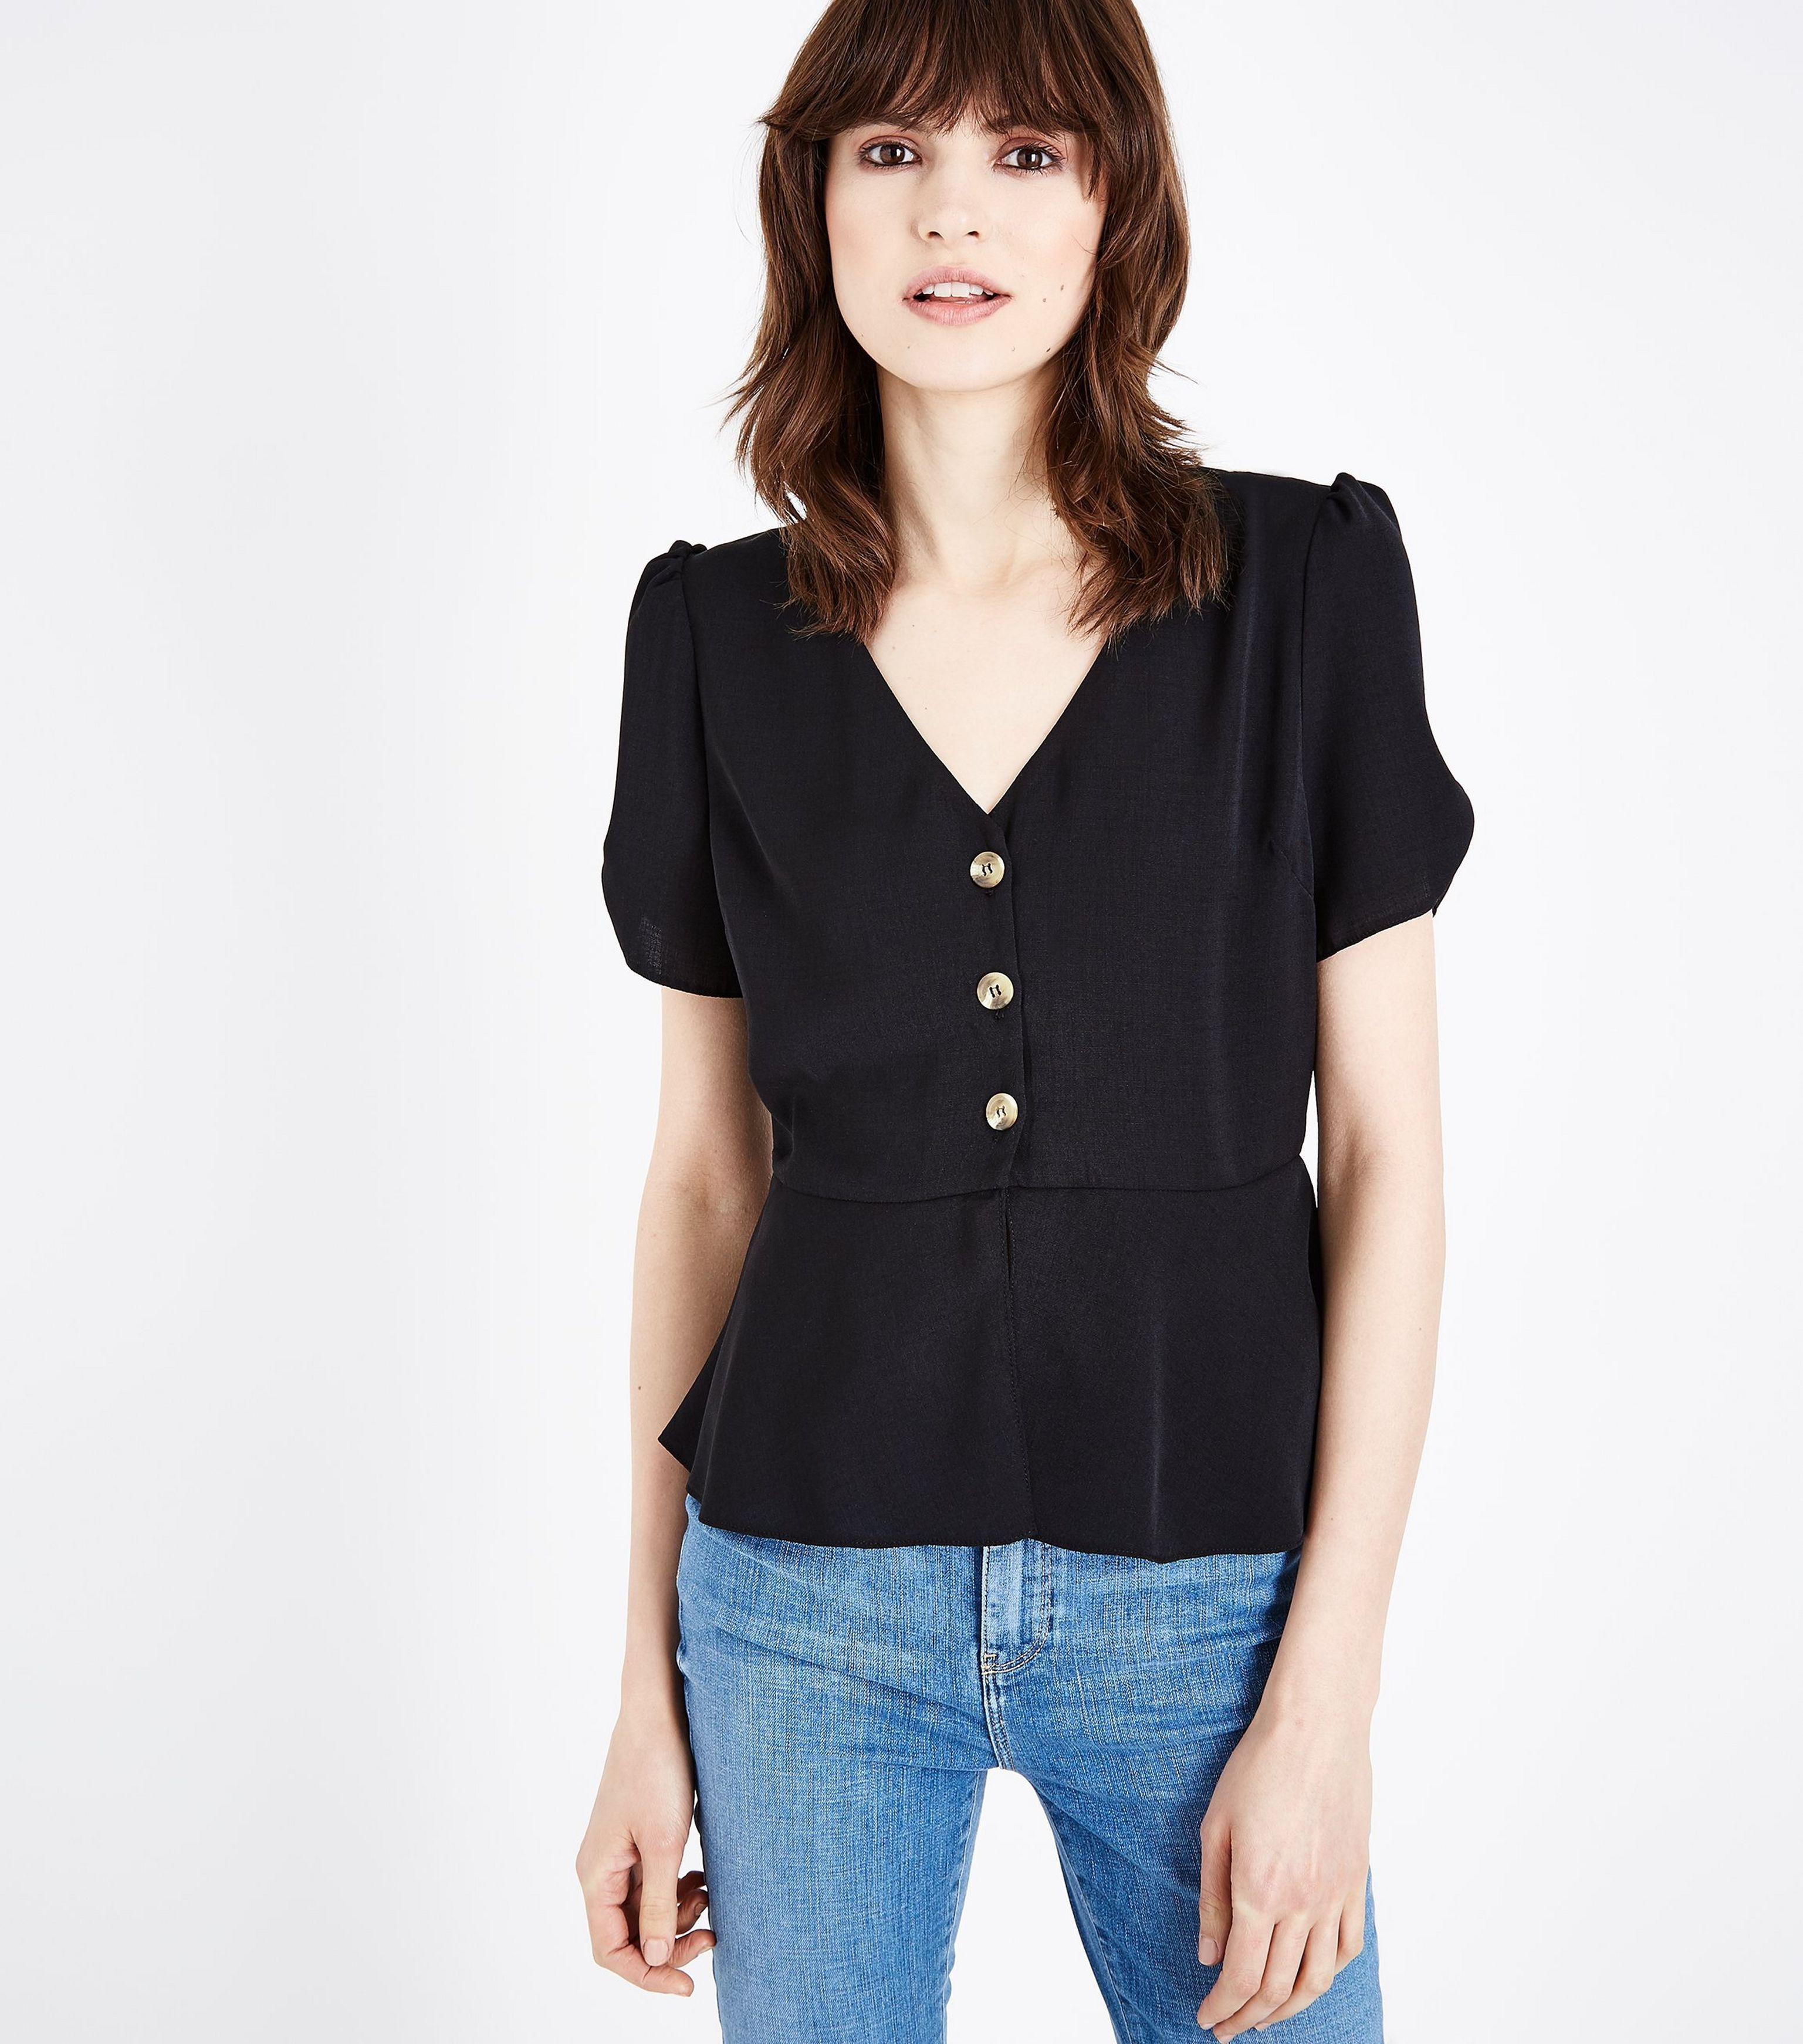 Sale Find Great Cheap Fake Womens Embroidered Foldover Button Front Shirt New Look Outlet Shop With Paypal For Sale vTezA2J